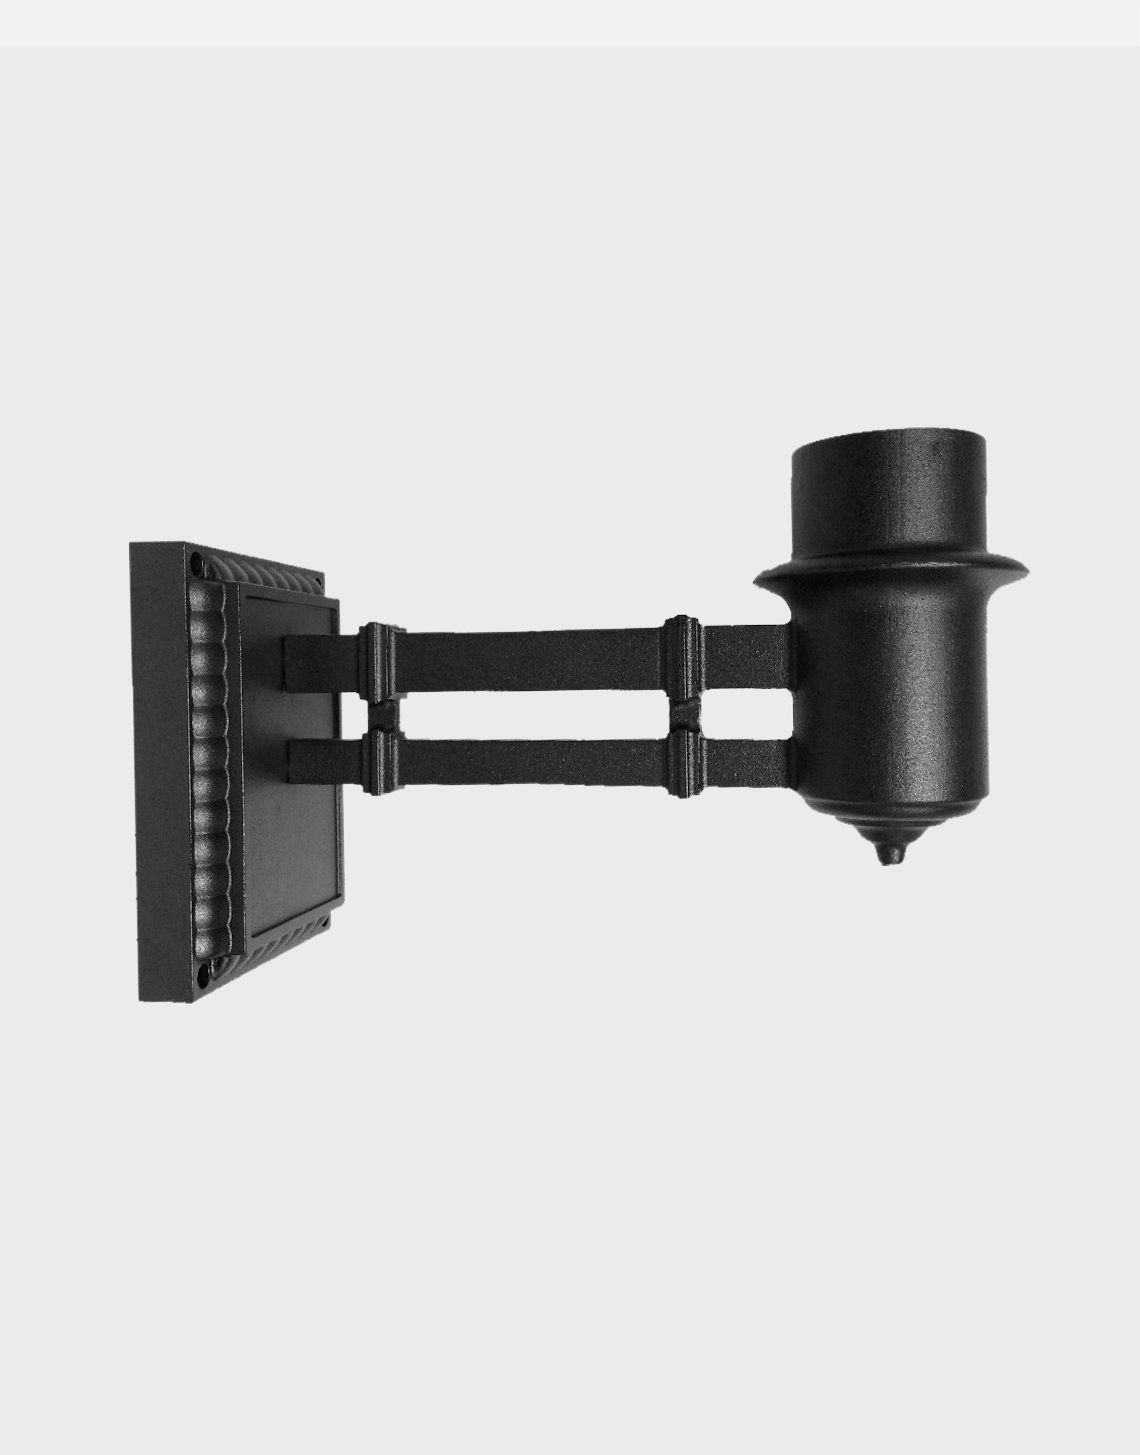 Craftsman Wall Mount Bracket